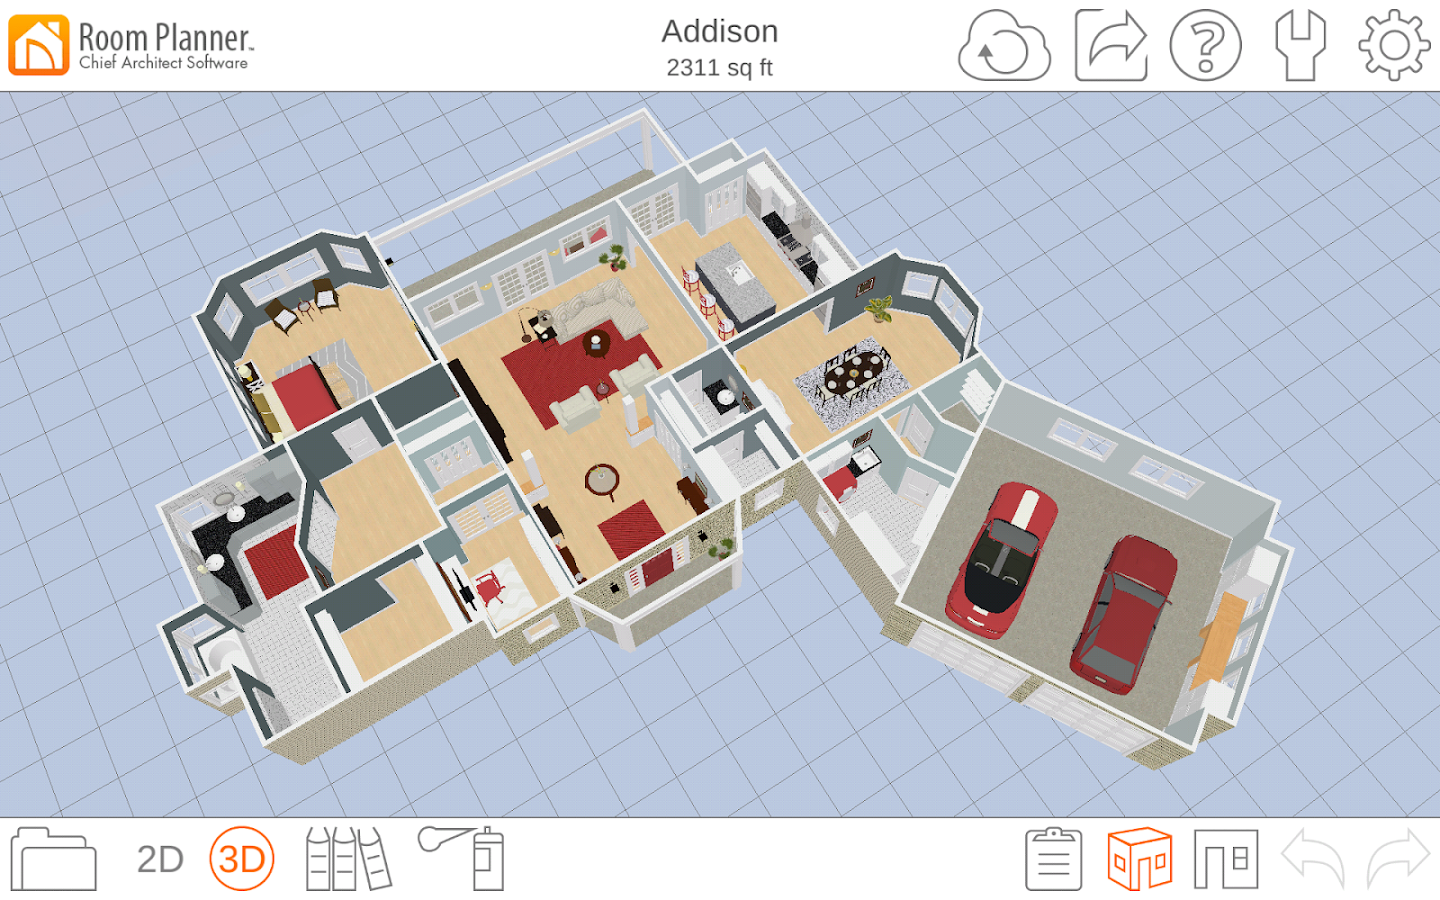 Room planner home design android apps on google play Floor design app